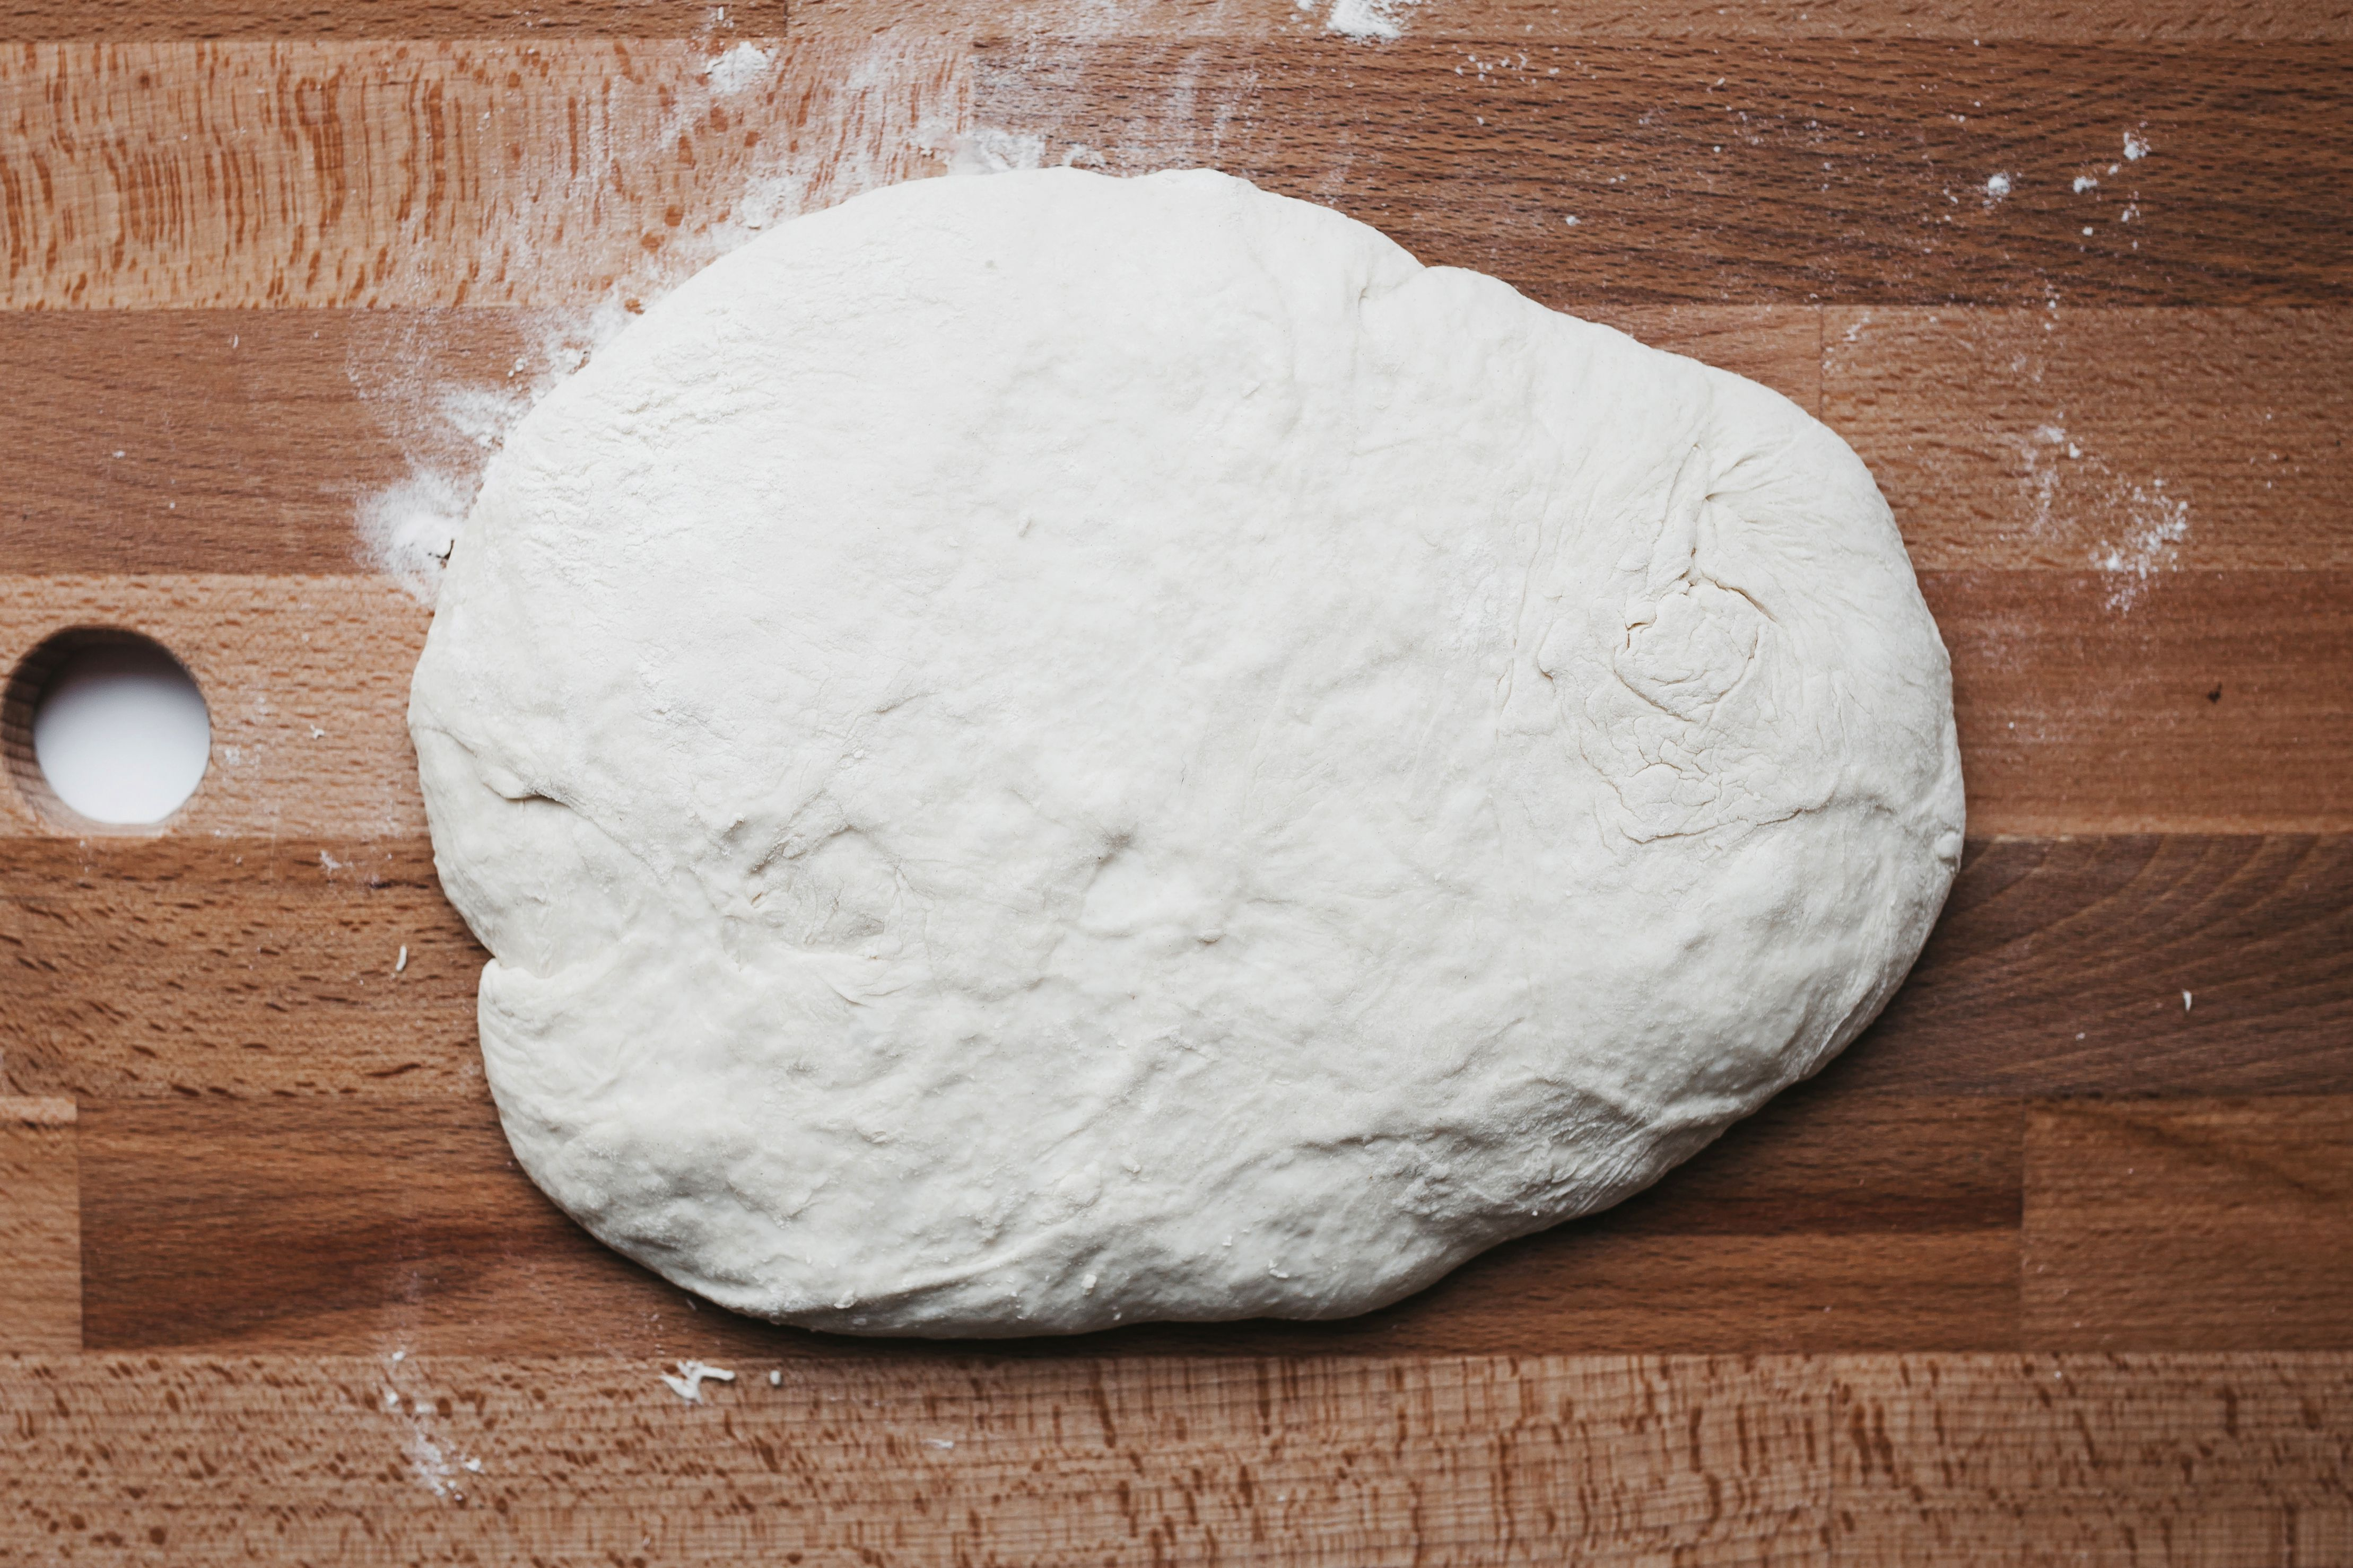 After the dough has risen, turn it out onto a floured work surface